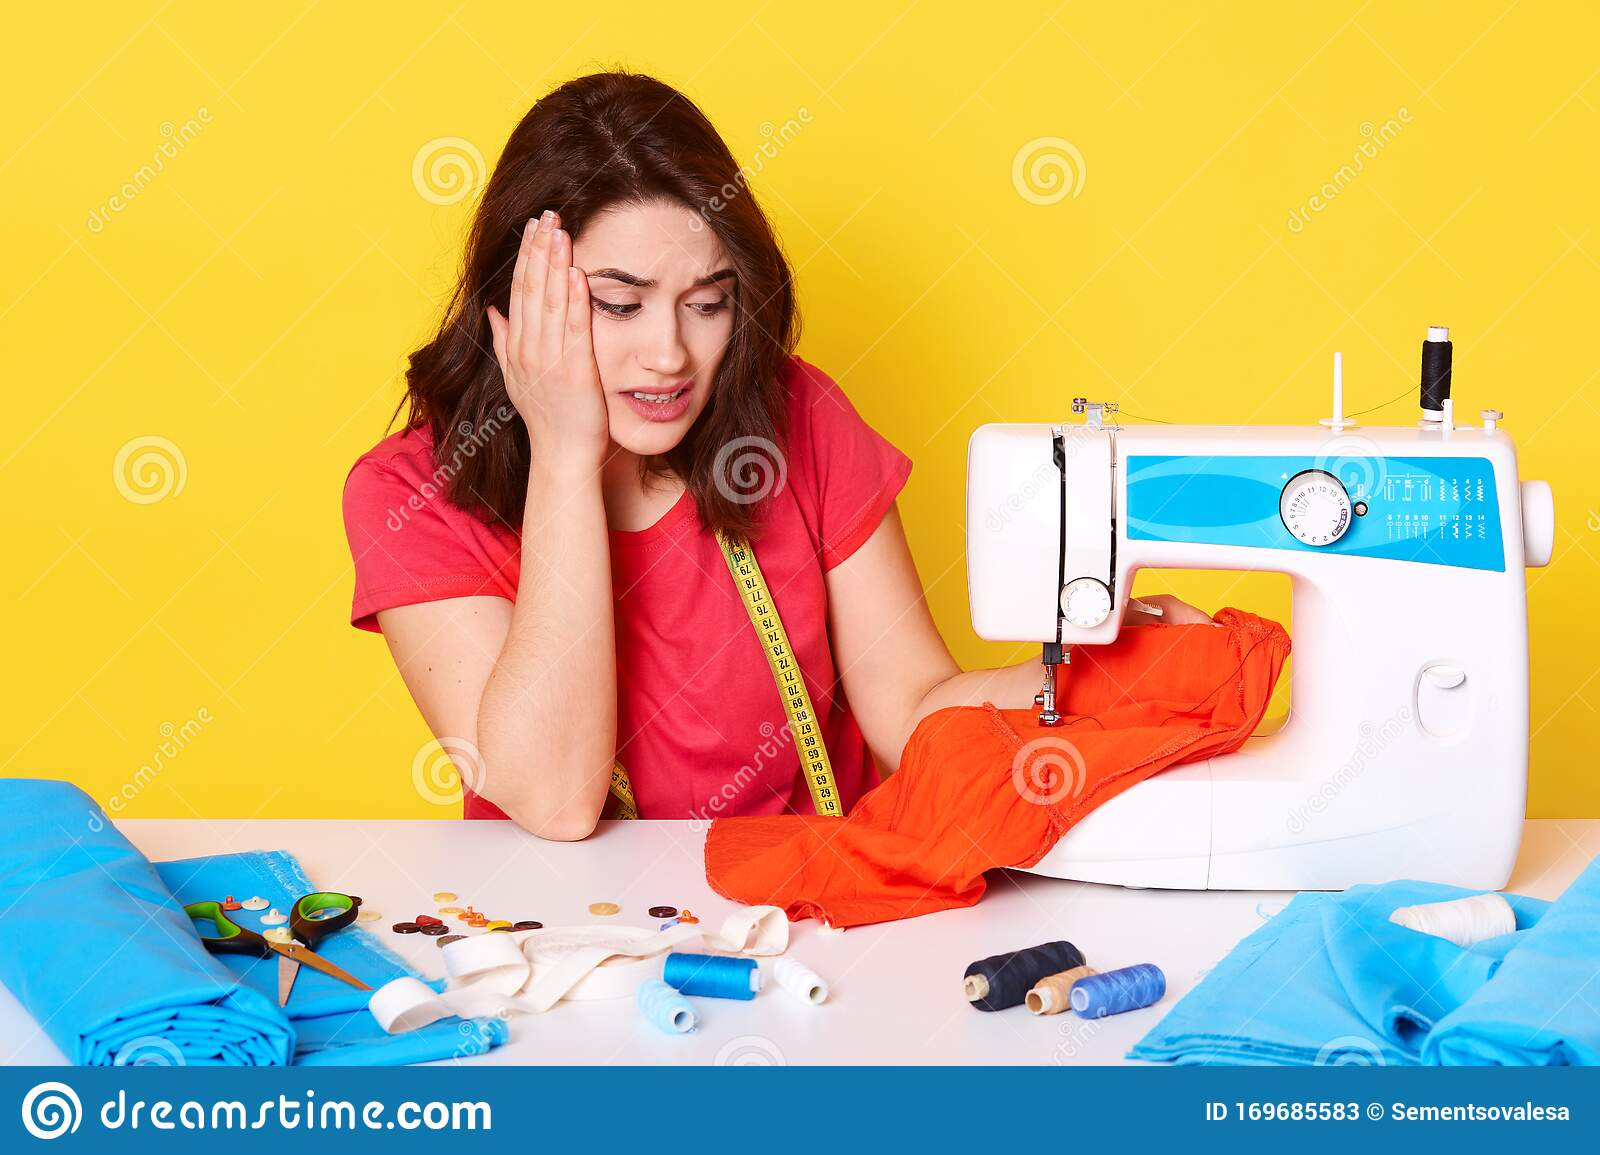 Close Up Portrait Of Fashion Designer Have No Idea When Designing New Collection Of Dress In Workshop Studio Looking At Piece Of Stock Image Image Of Exhausted Sewer 169685583